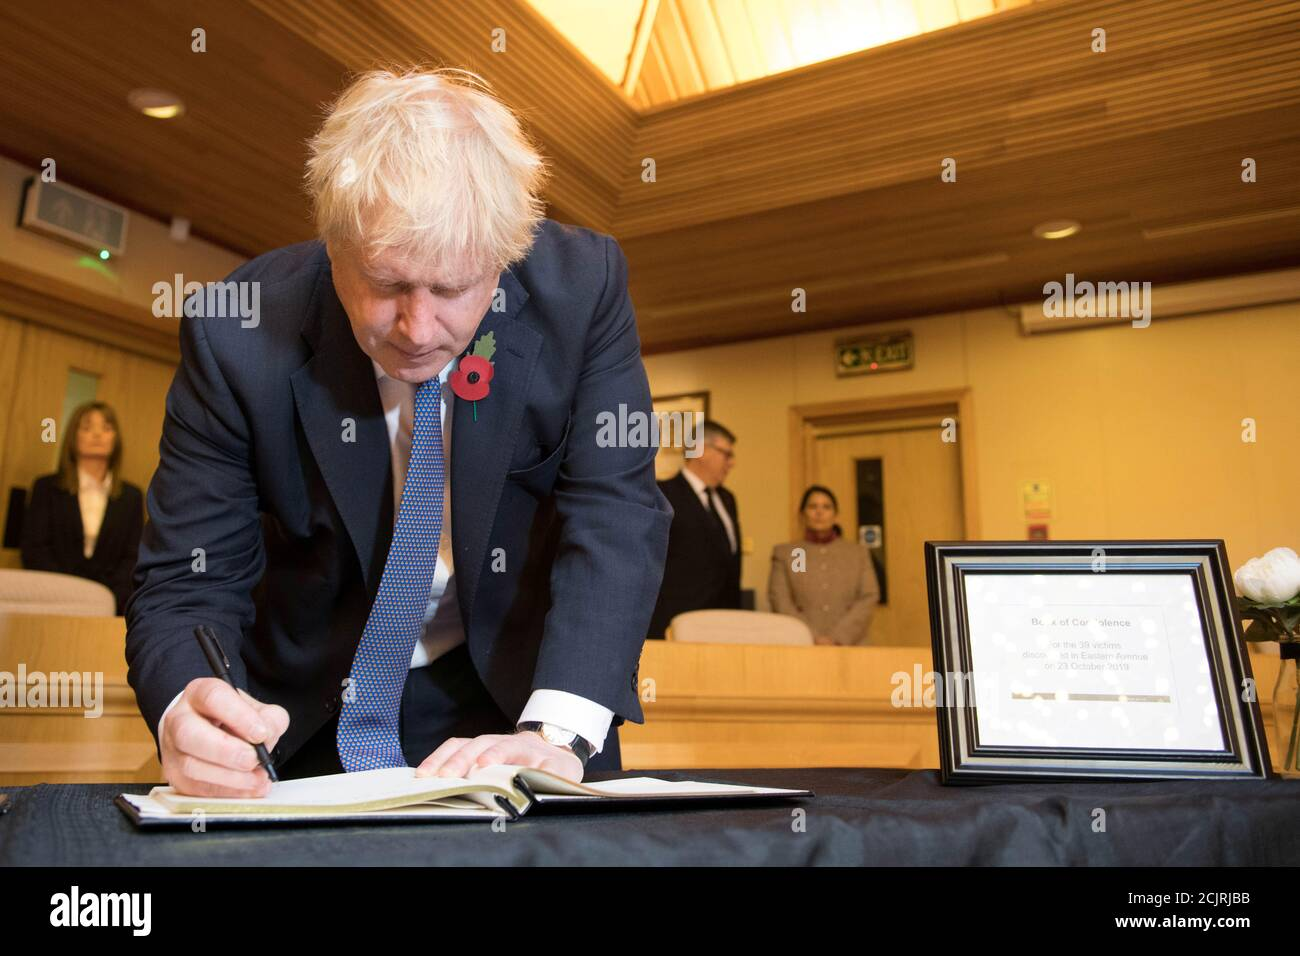 Britain's Prime Minister Boris Johnson signs a book of condolence during a visit to Thurrock Council Offices in Grays, Britain, October 28, 2019. Stefan Rousseau/Pool via REUTERS Stock Photo